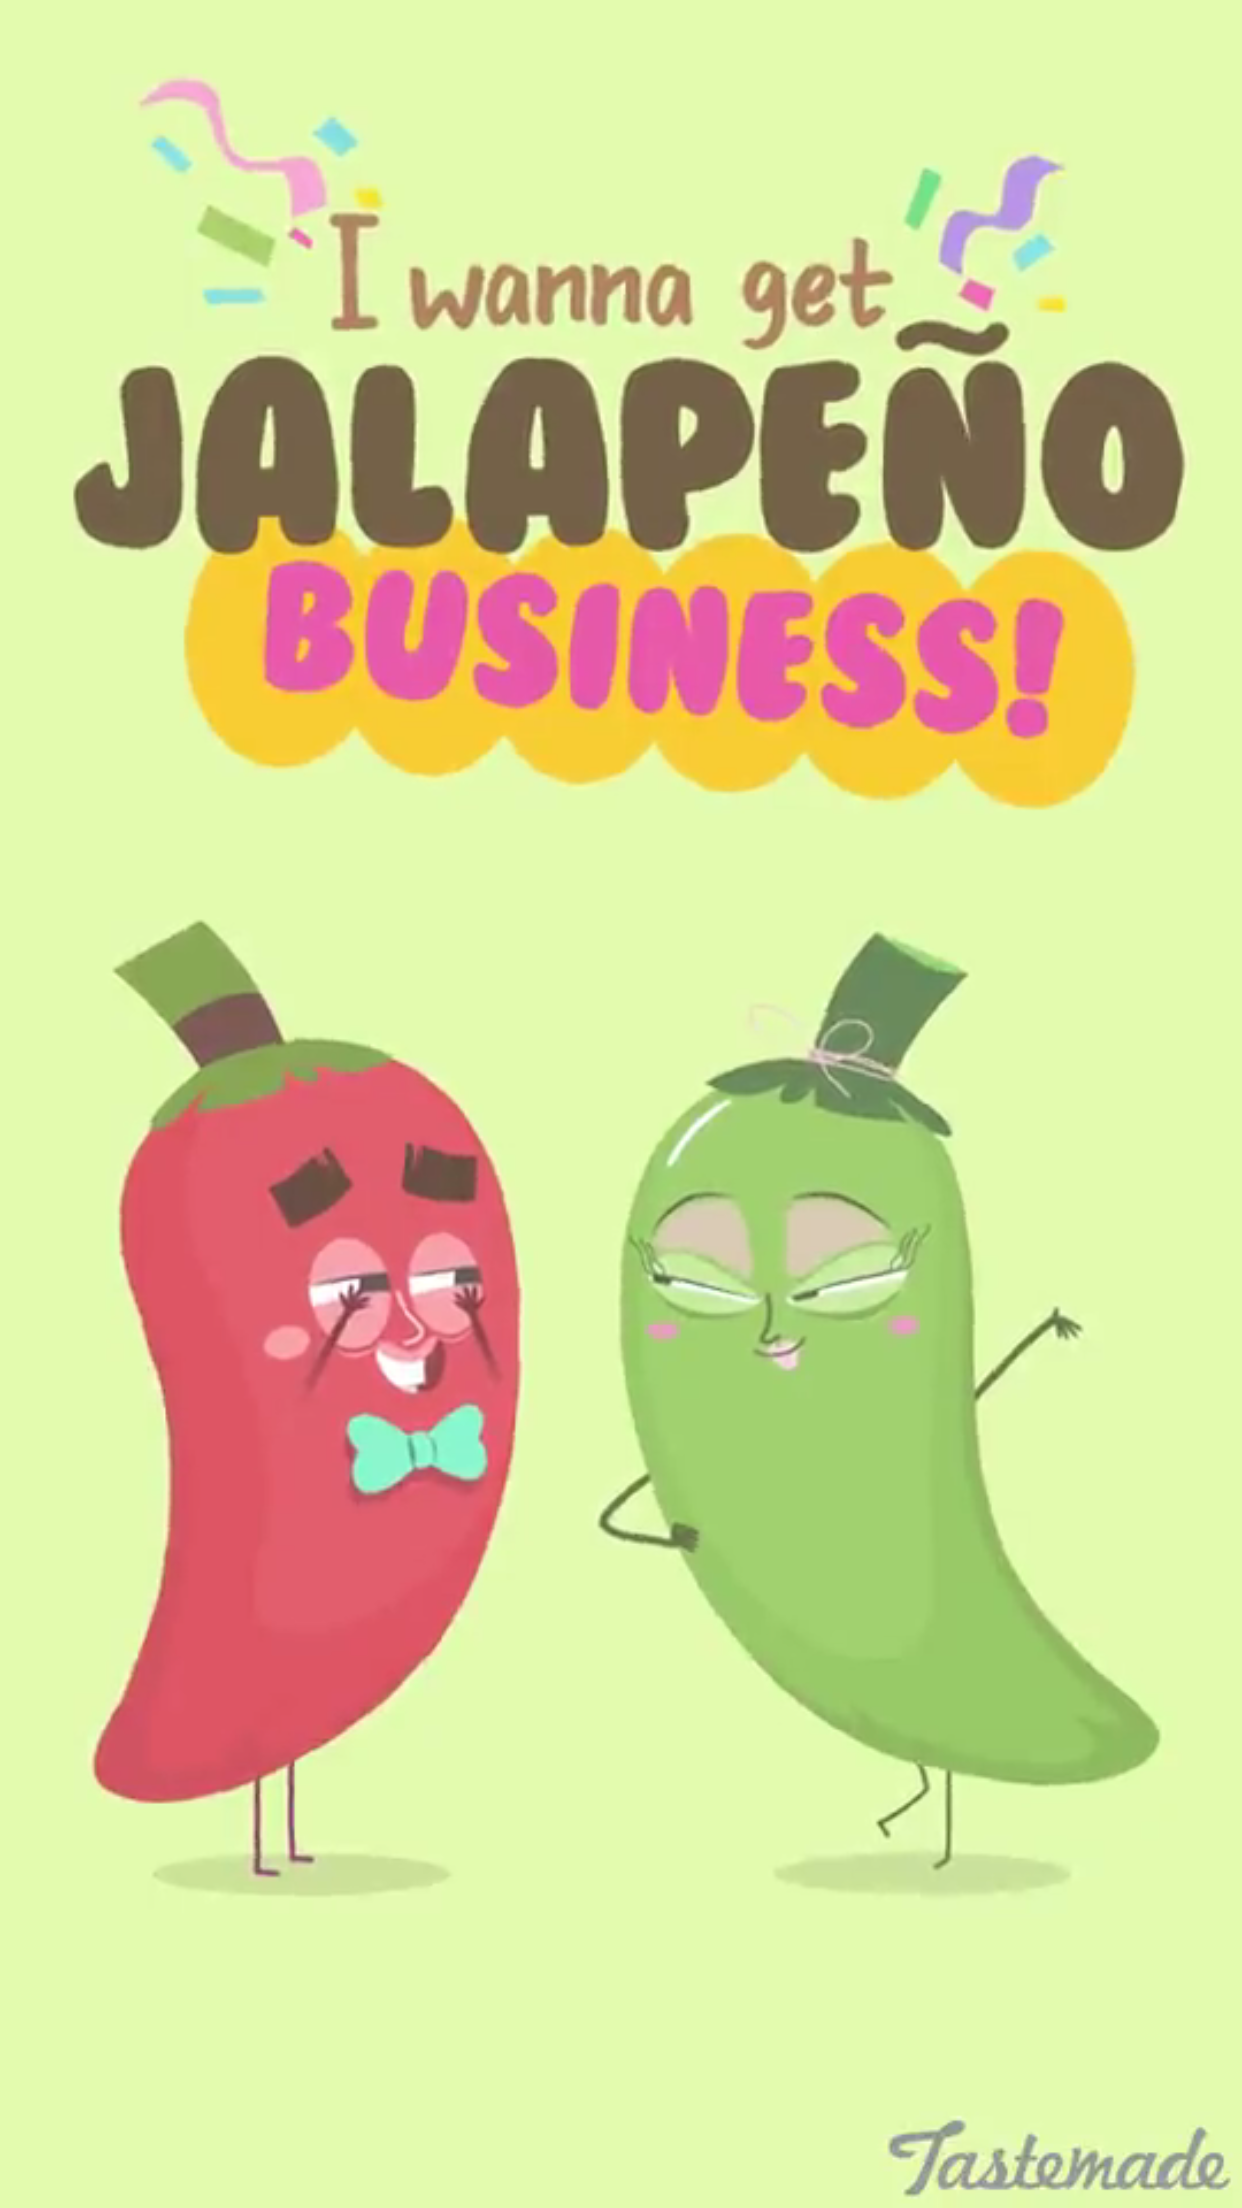 Tastemade food illustration on snapchat Corny puns